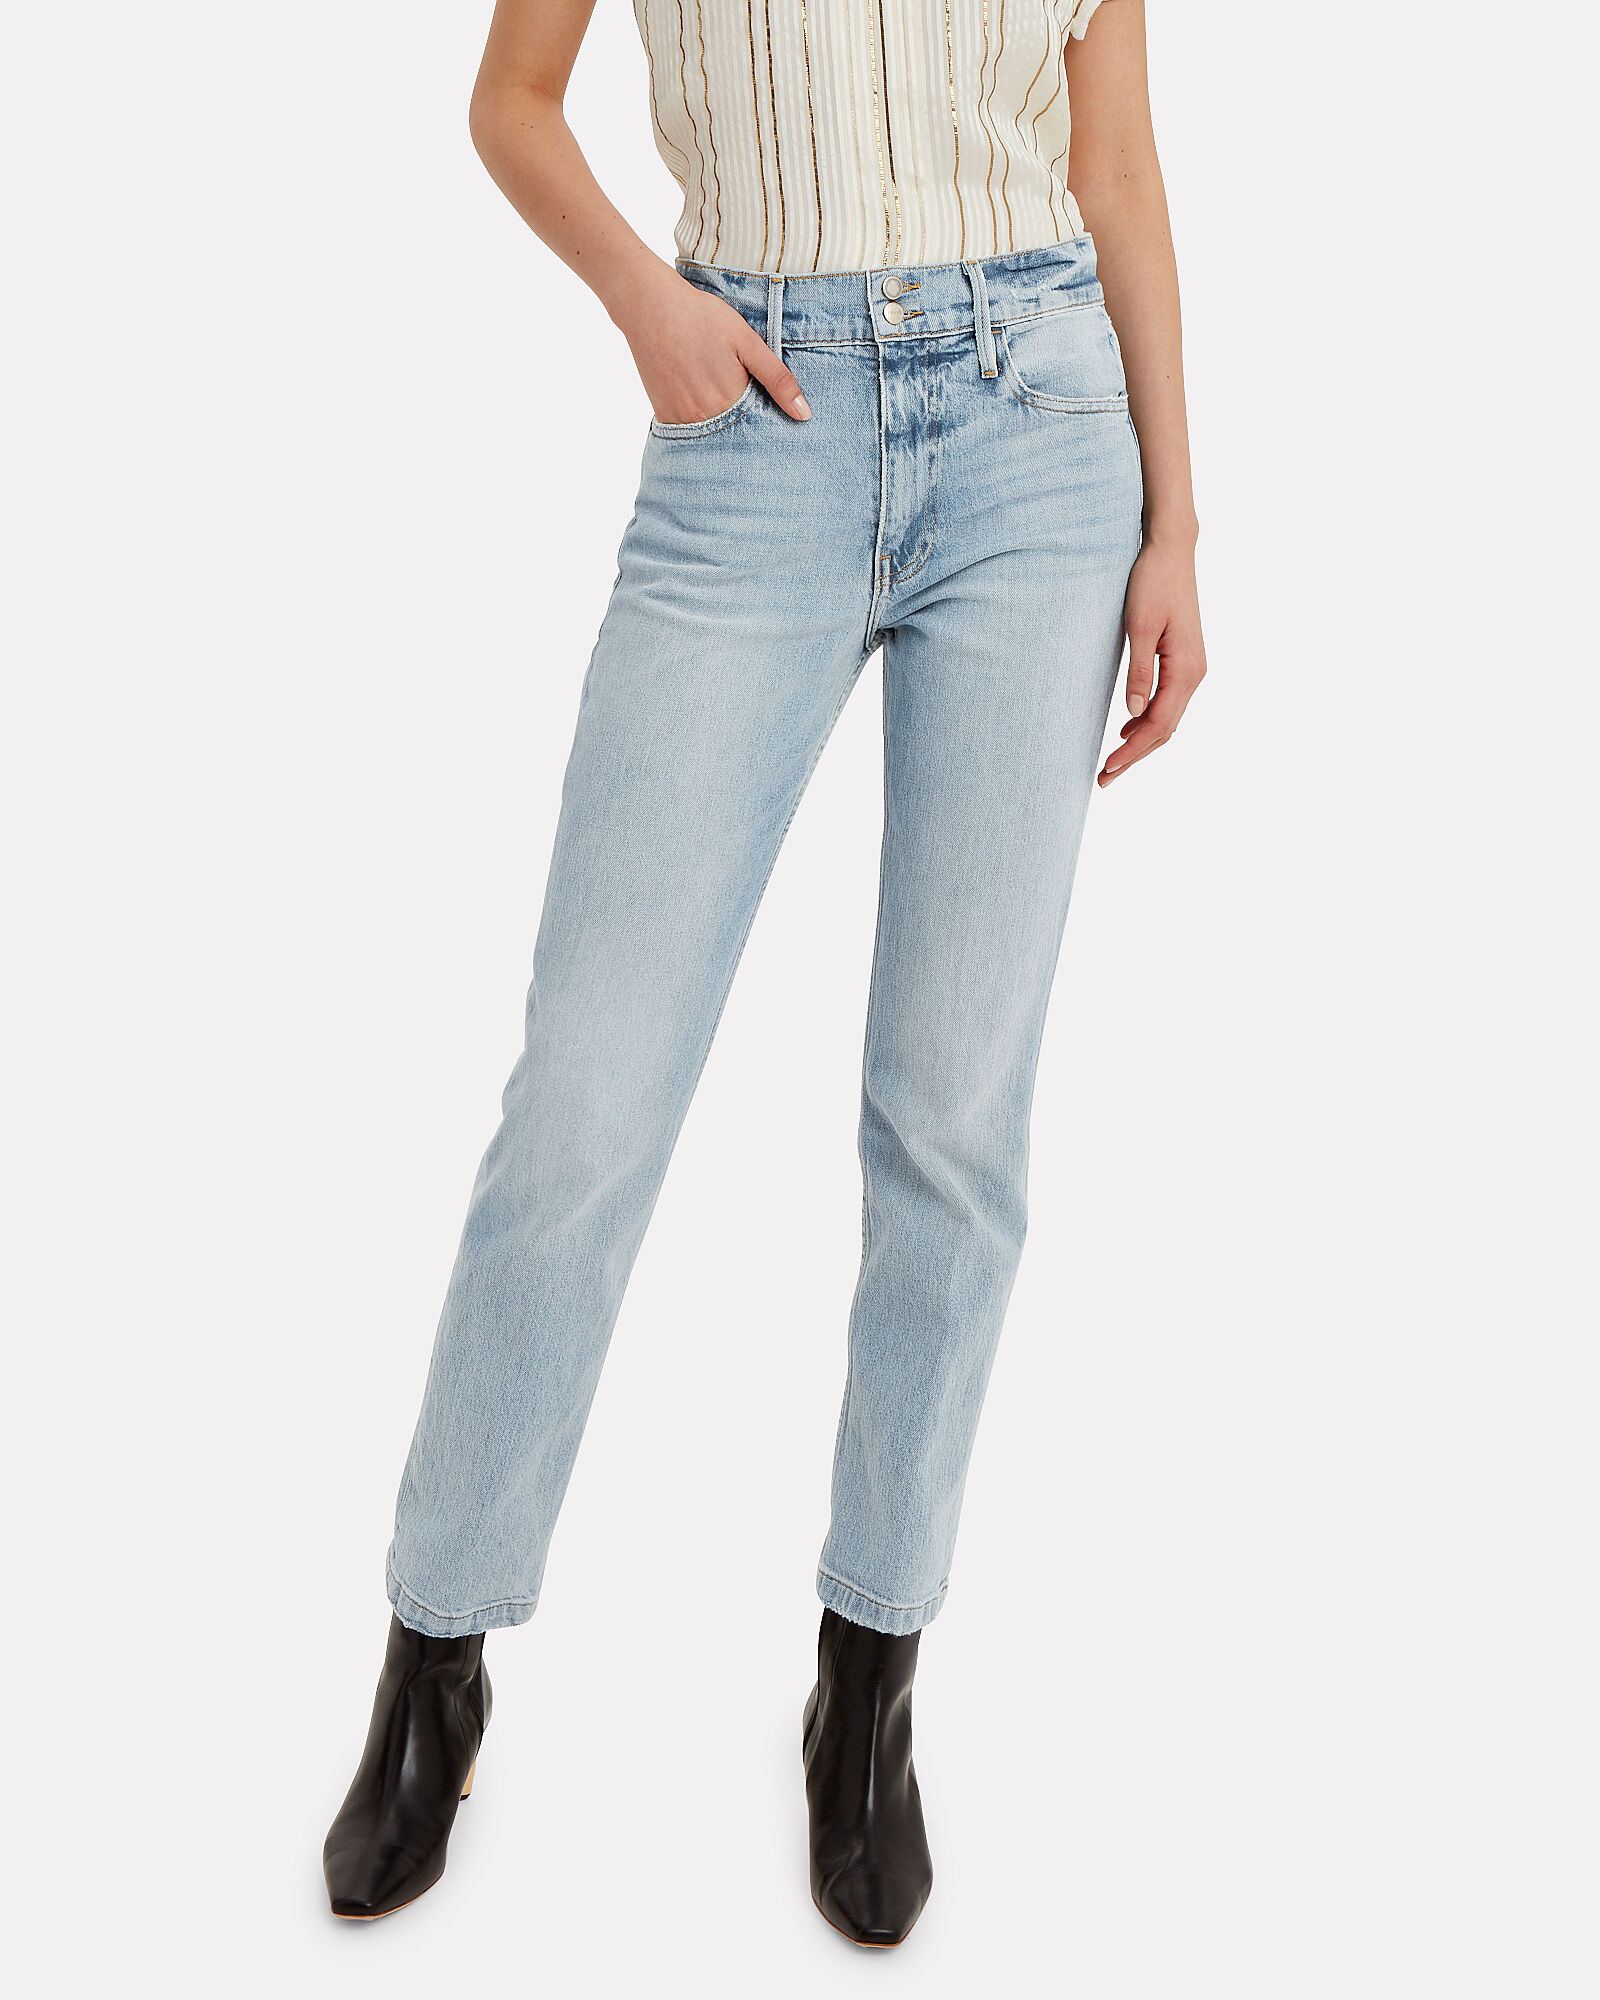 Le Sylvie Slender Jeans, LIGHT WASH DENIM, hi-res